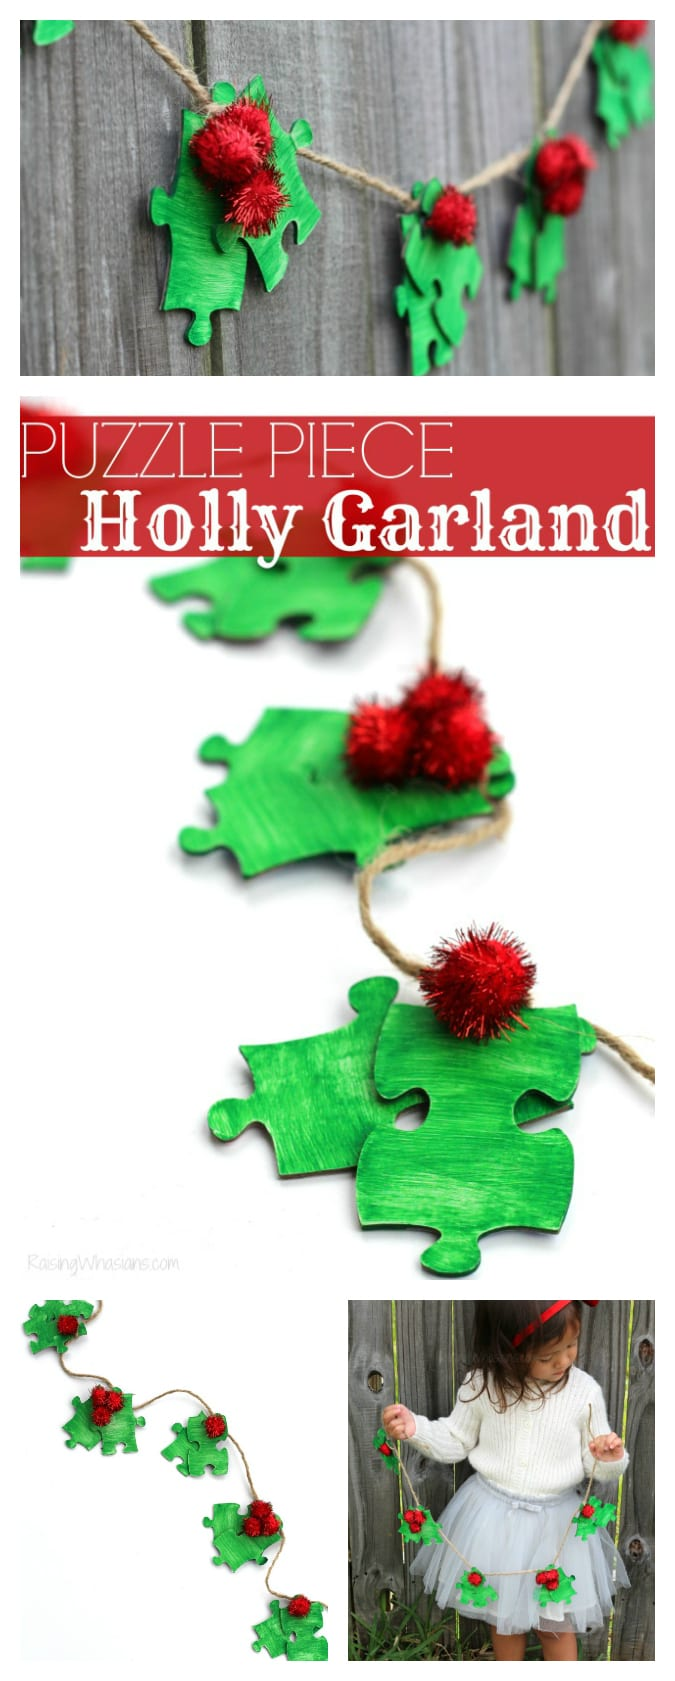 Upcycled puzzle piece Christmas craft Puzzle Piece Holly Garland Christmas Kids Craft | make this easy upcycled kids craft for the holidays using old puzzle pieces! #Christmas #Craft #KidsCraft